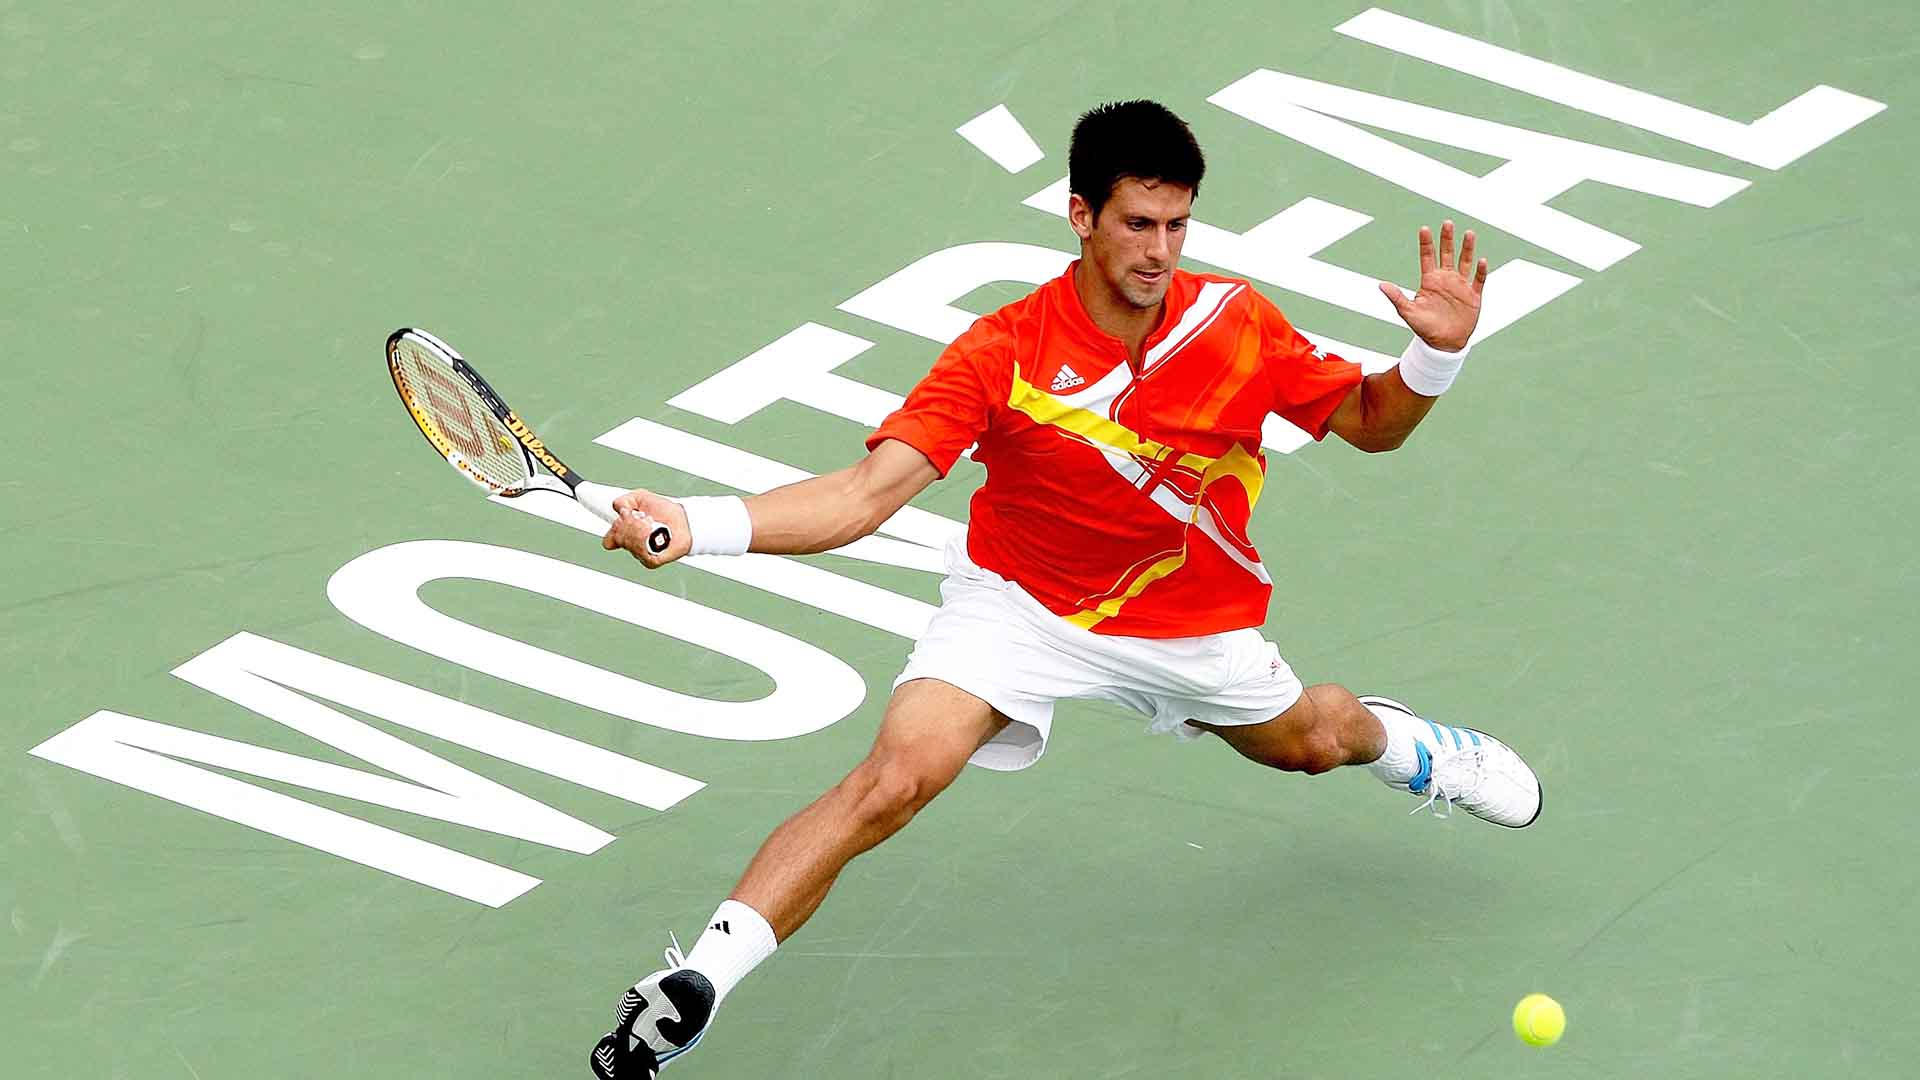 <a href='https://www.atptour.com/en/players/novak-djokovic/d643/overview'>Novak Djokovic</a> lifted his maiden Coupe Rogers title in 2007.